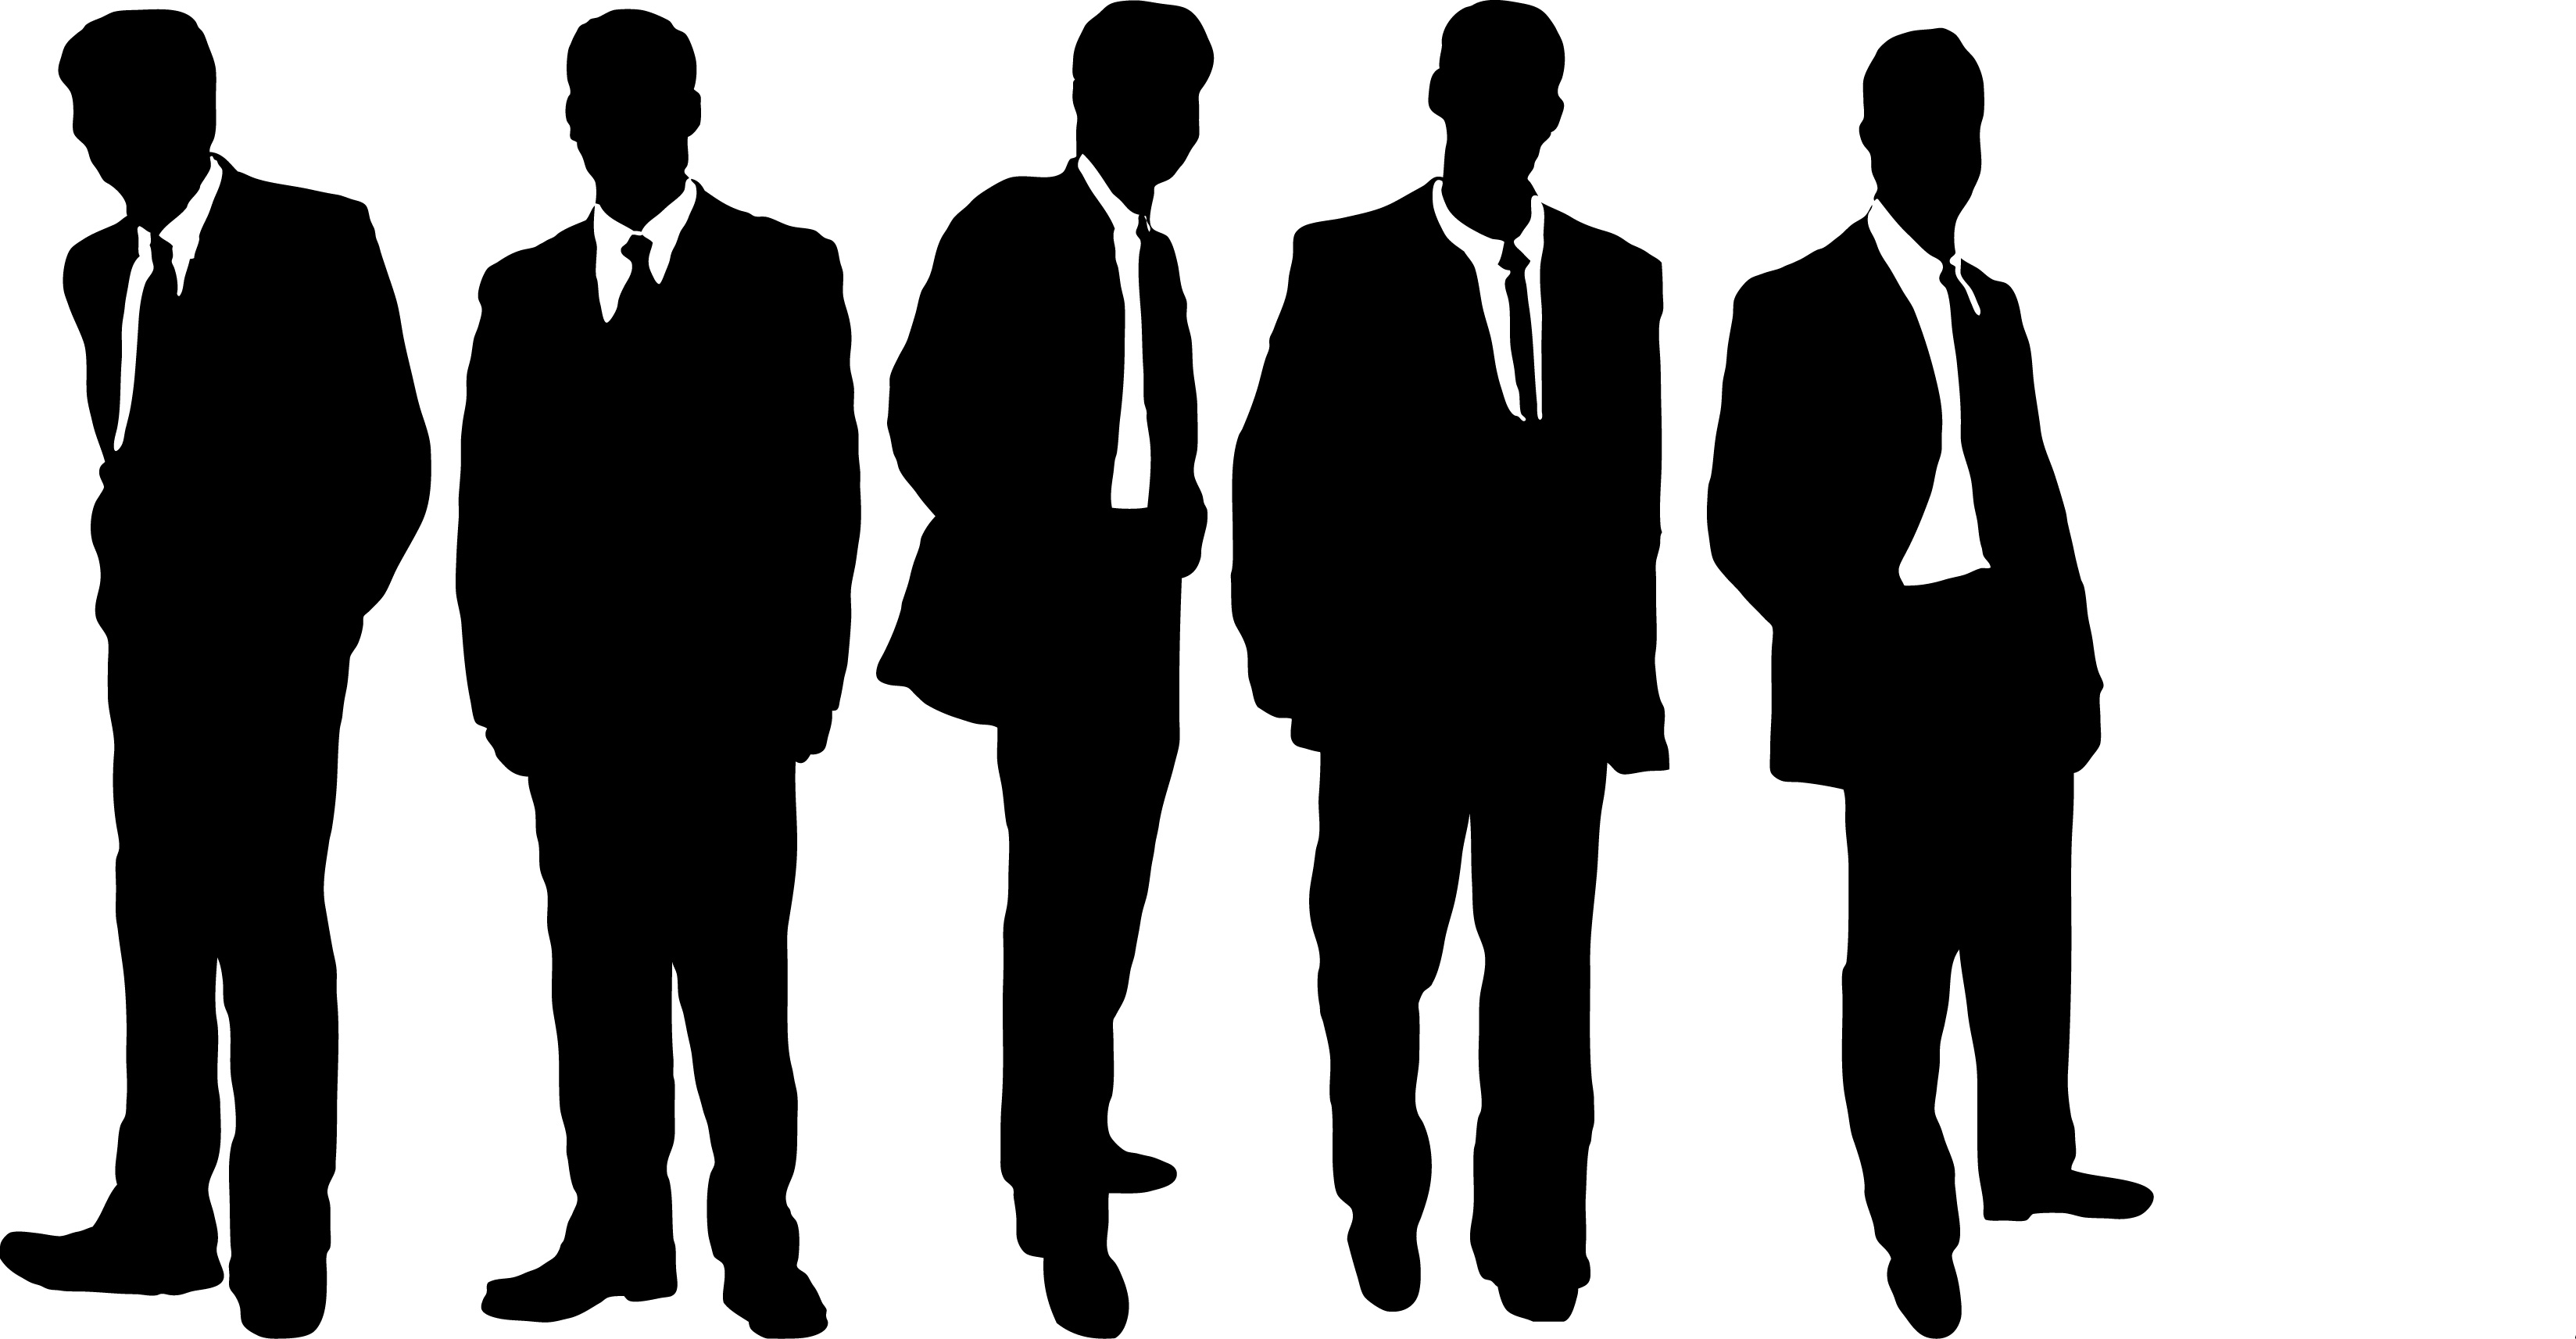 Businessman clipart transparent background.  collection of man